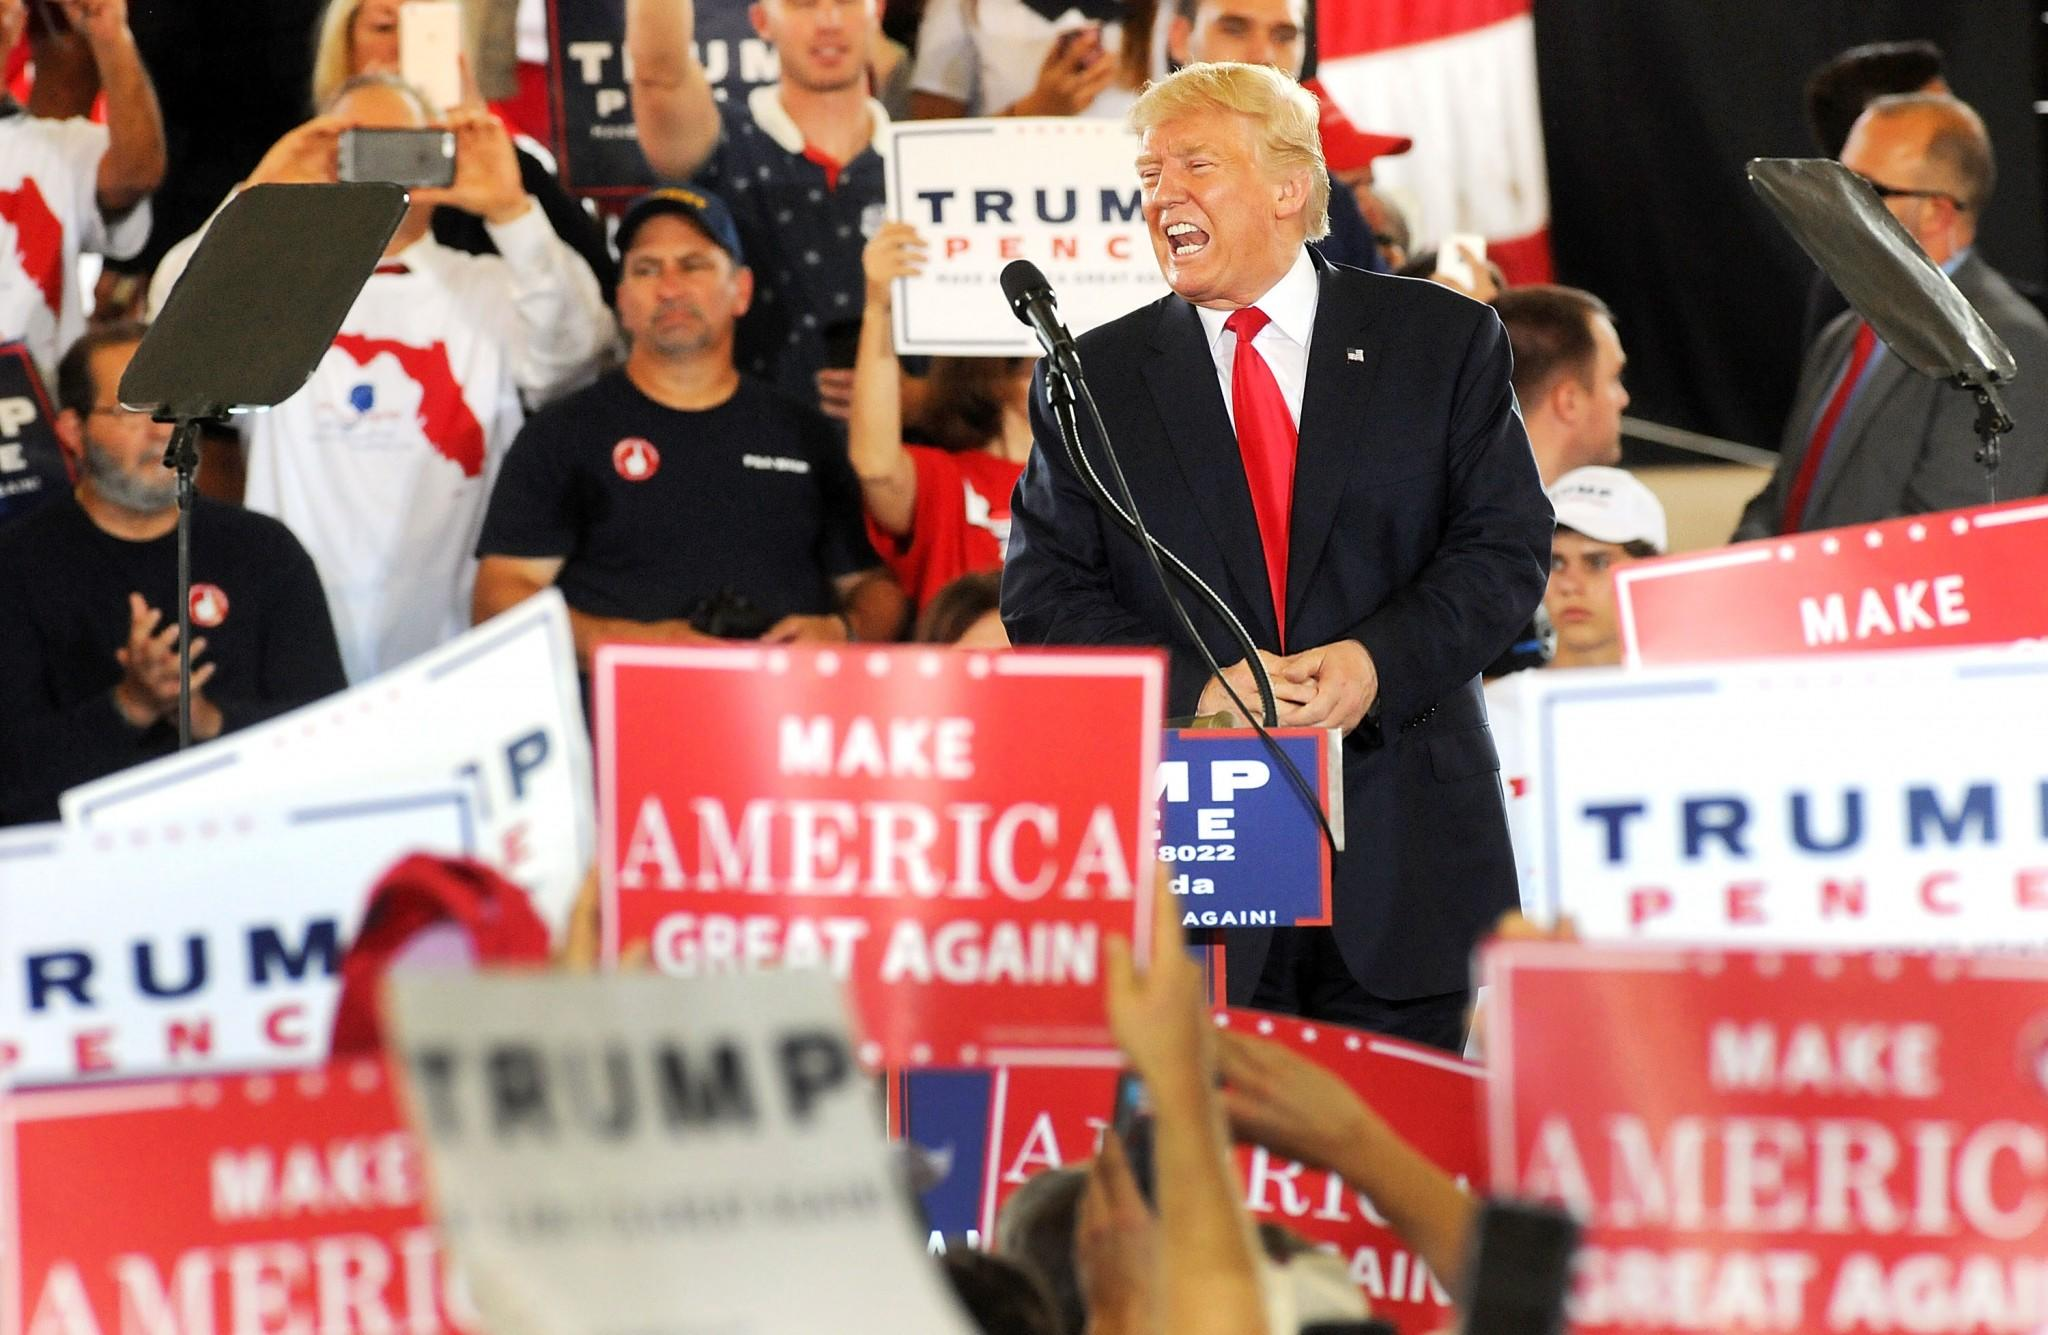 Republican presidential nominee Donald Trump greets supporters during a rally at Southeastern Livestock Pavilion on October 12, 2016, in Ocala, Fla.